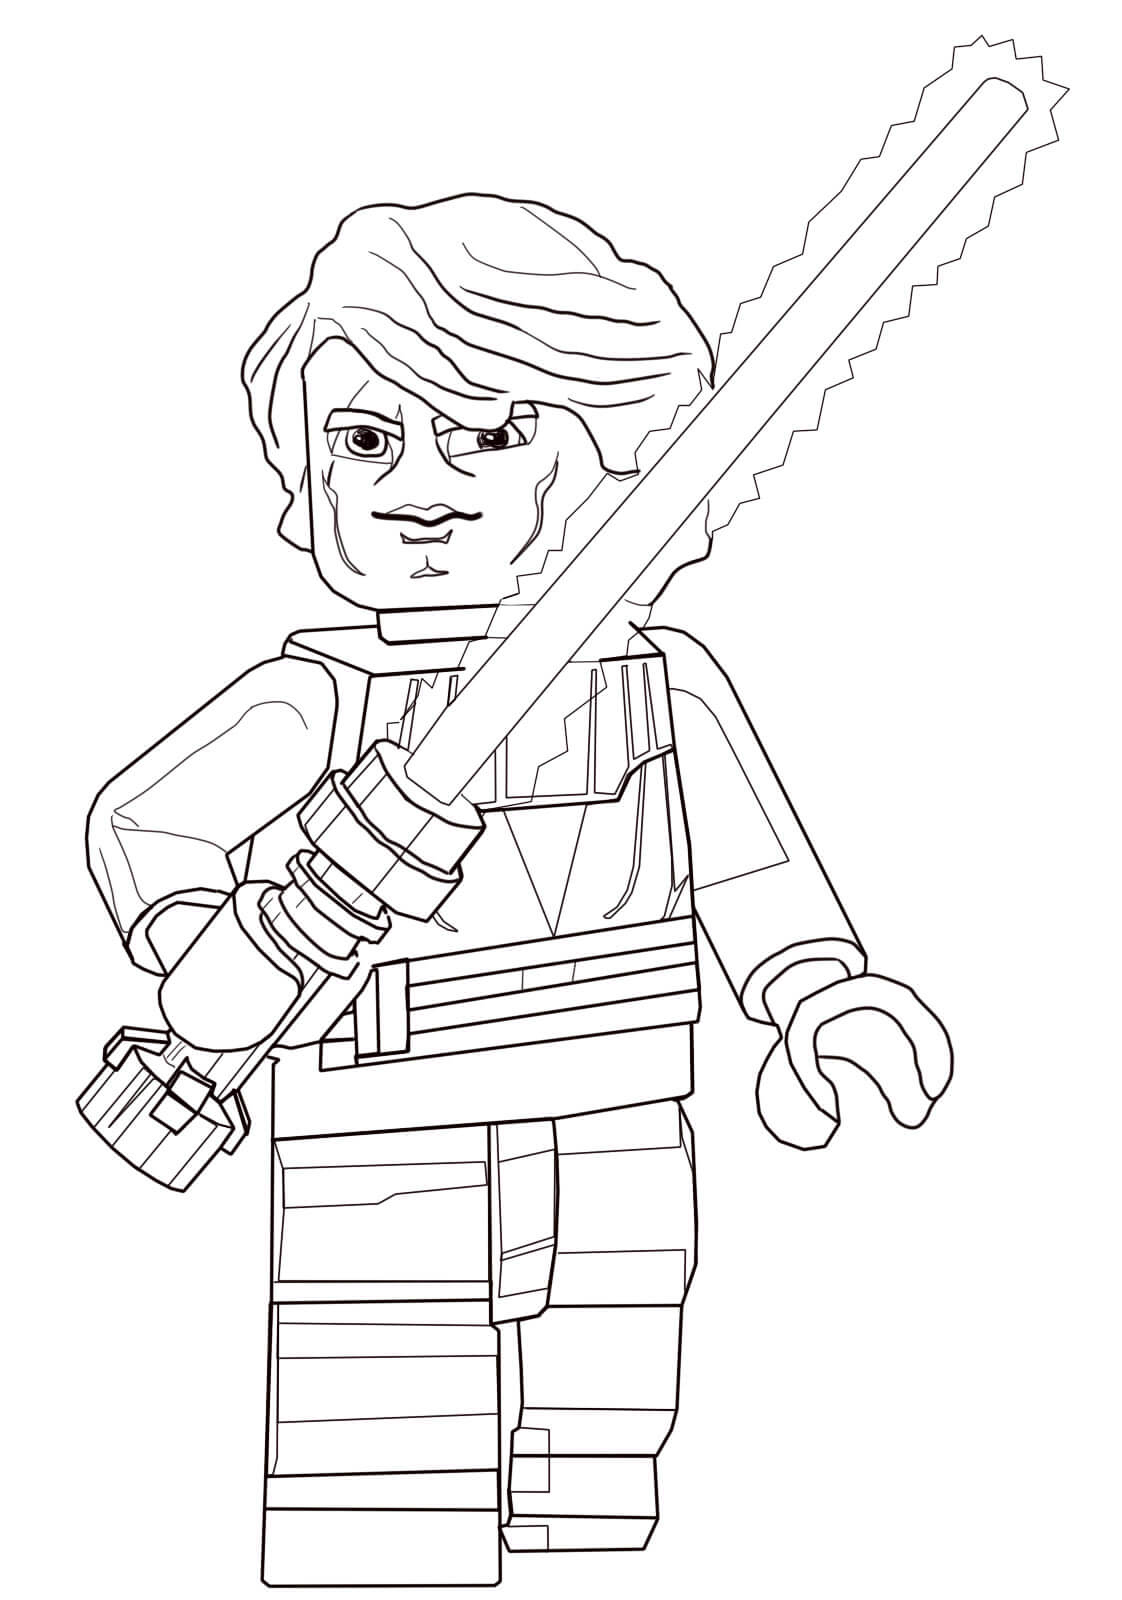 Lego Nexo Knights Jestro Coloring Page Free Coloring Pages Online